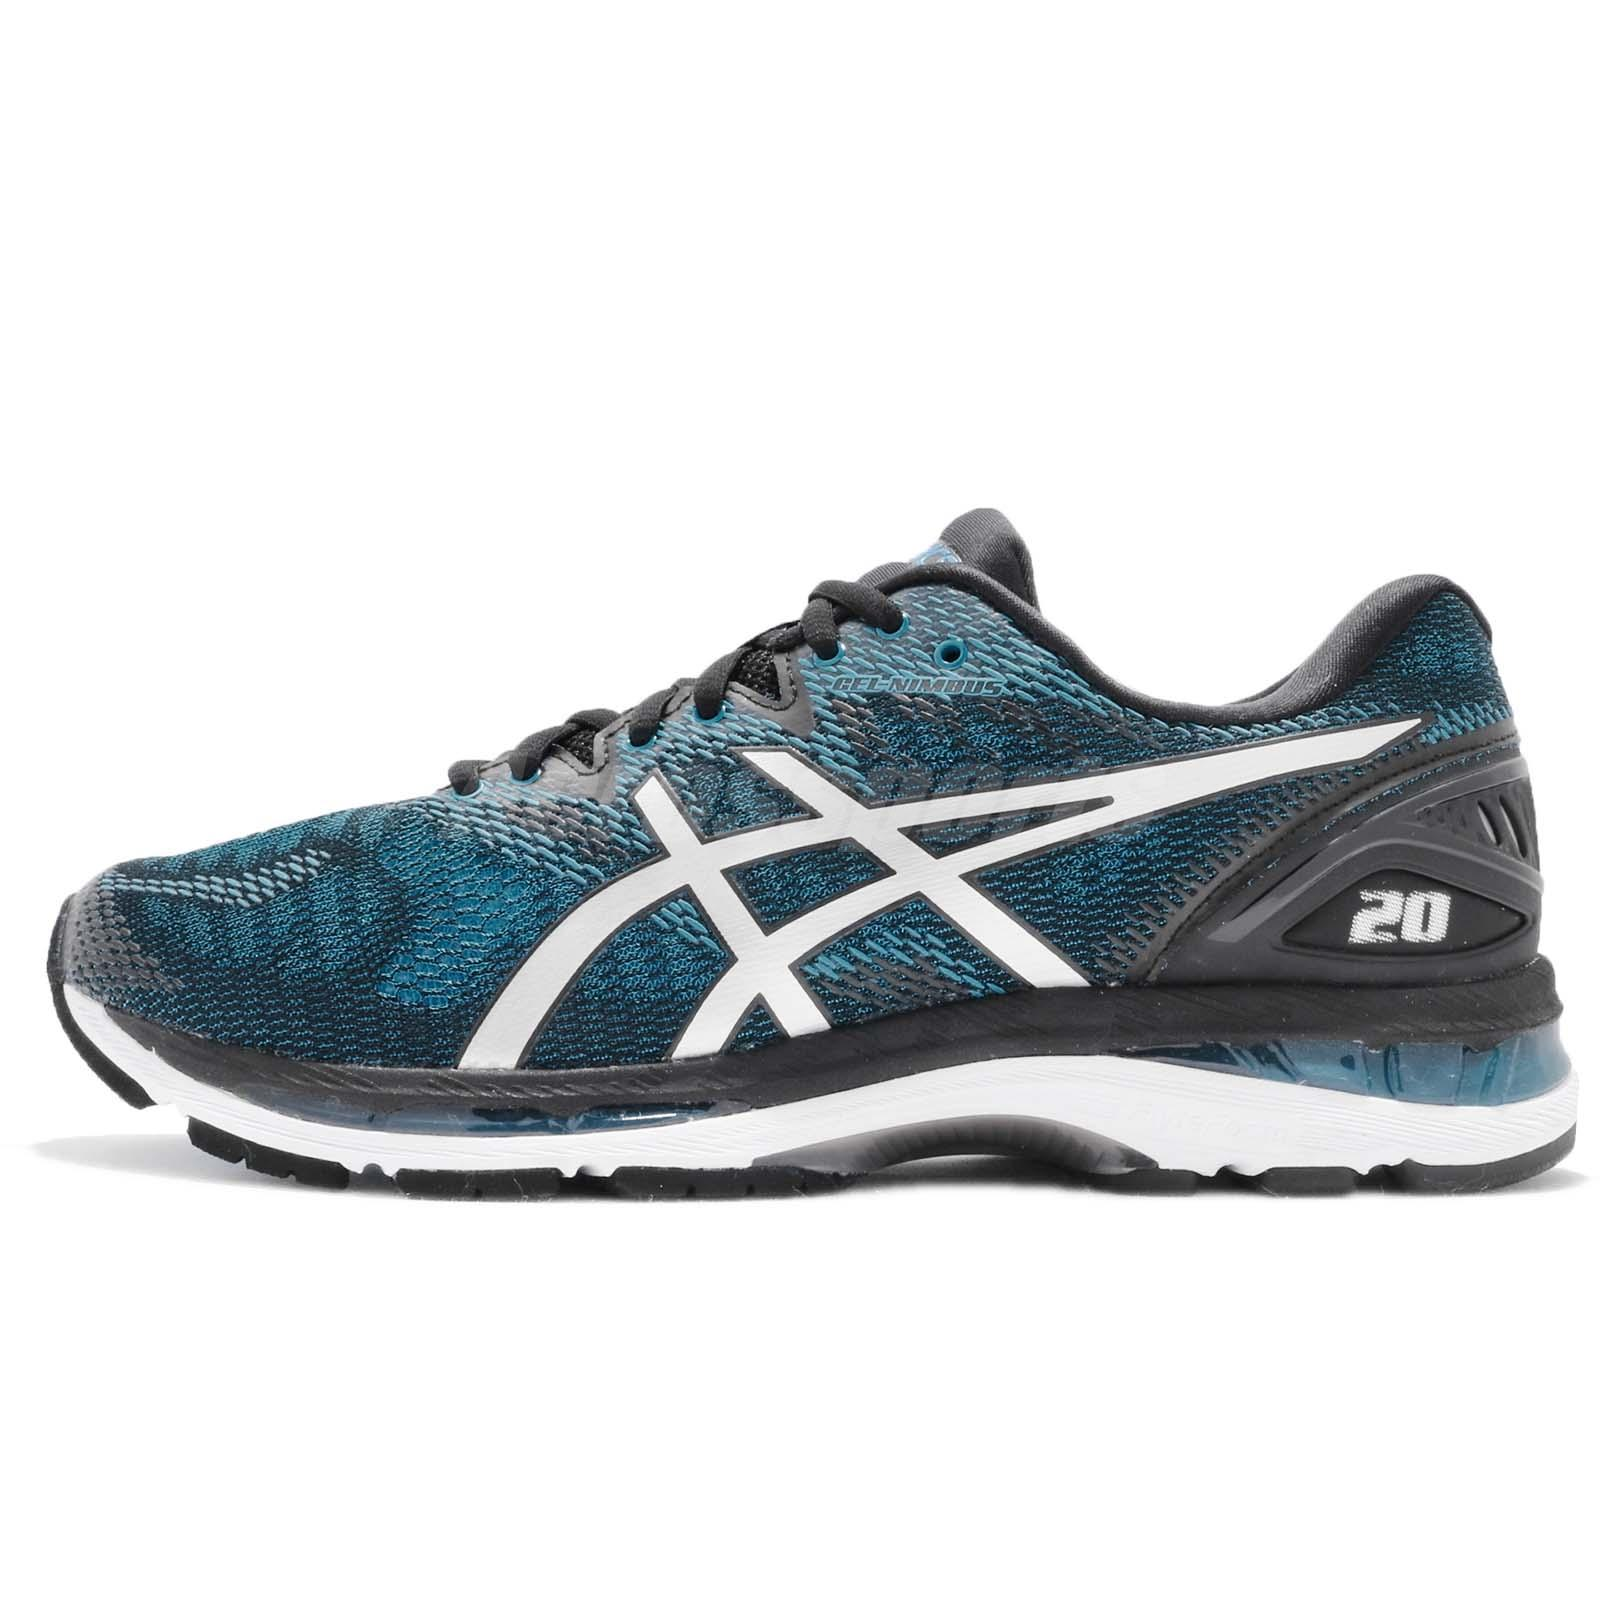 26df8d2939 Asics Gel-Nimbus 20 Island Blue White Black Men Running Training Shoe T800N- 4101